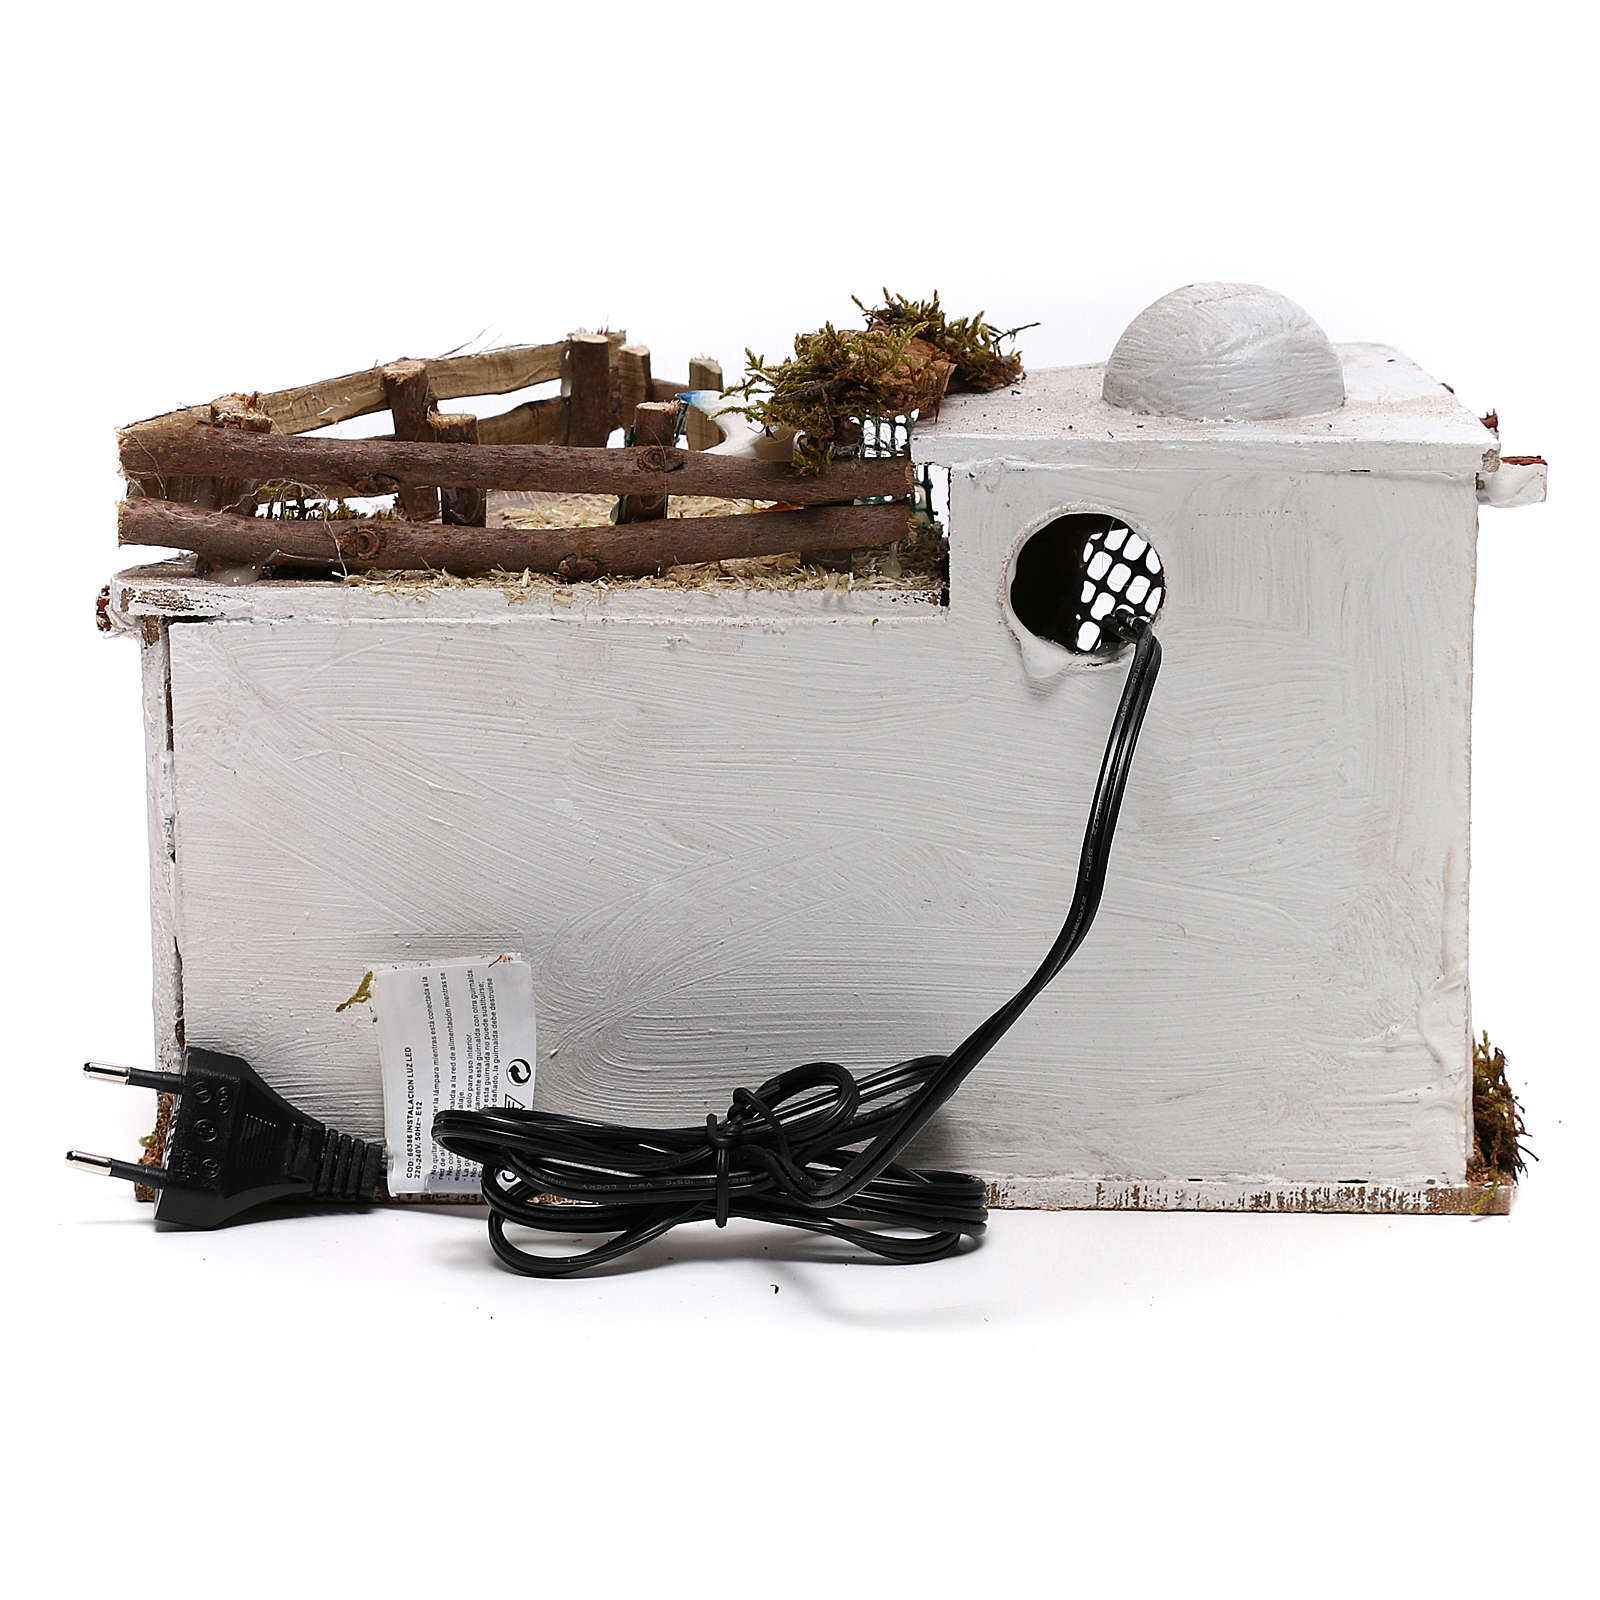 Arabic village with terrace with lights for Nativity Scene 15x25x15 cm 4